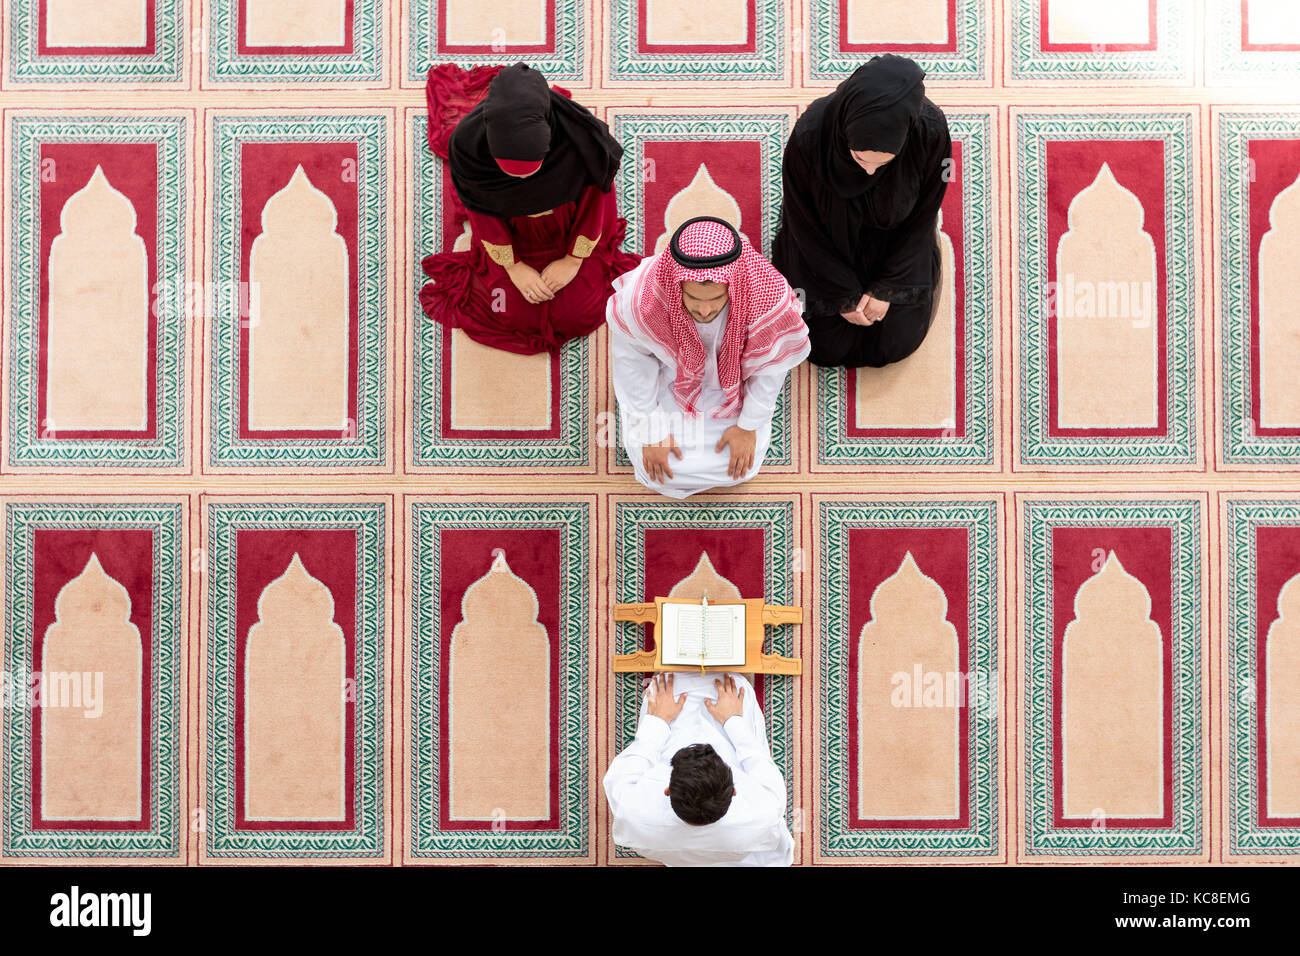 Muslim girl and the man marry by Muslim traditions - Stock Image